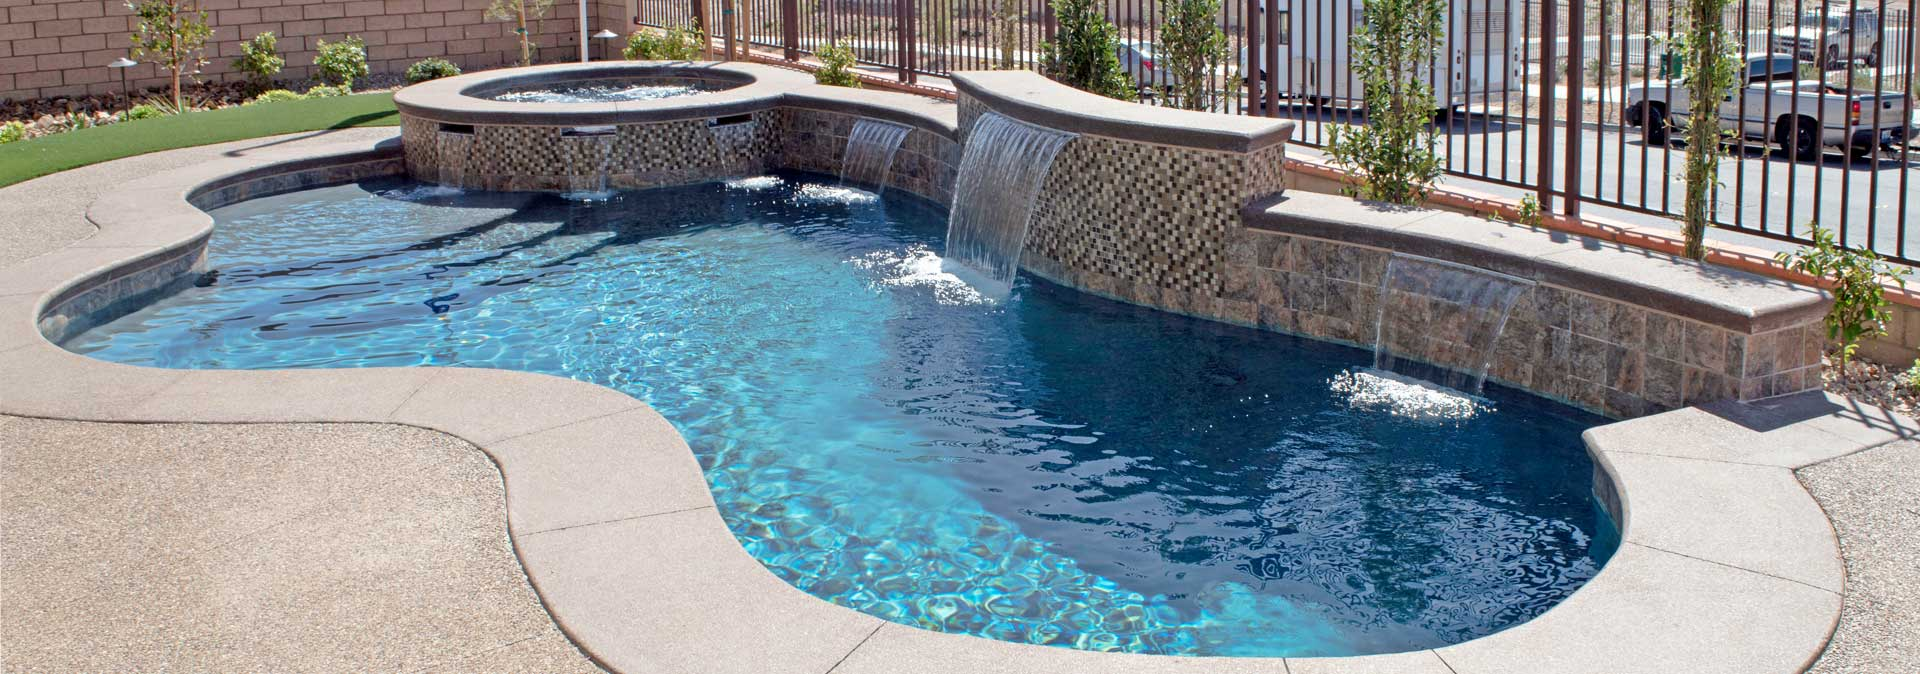 Las Vegas Custom Landscapes & Custom Pools - Alpha Landscapes